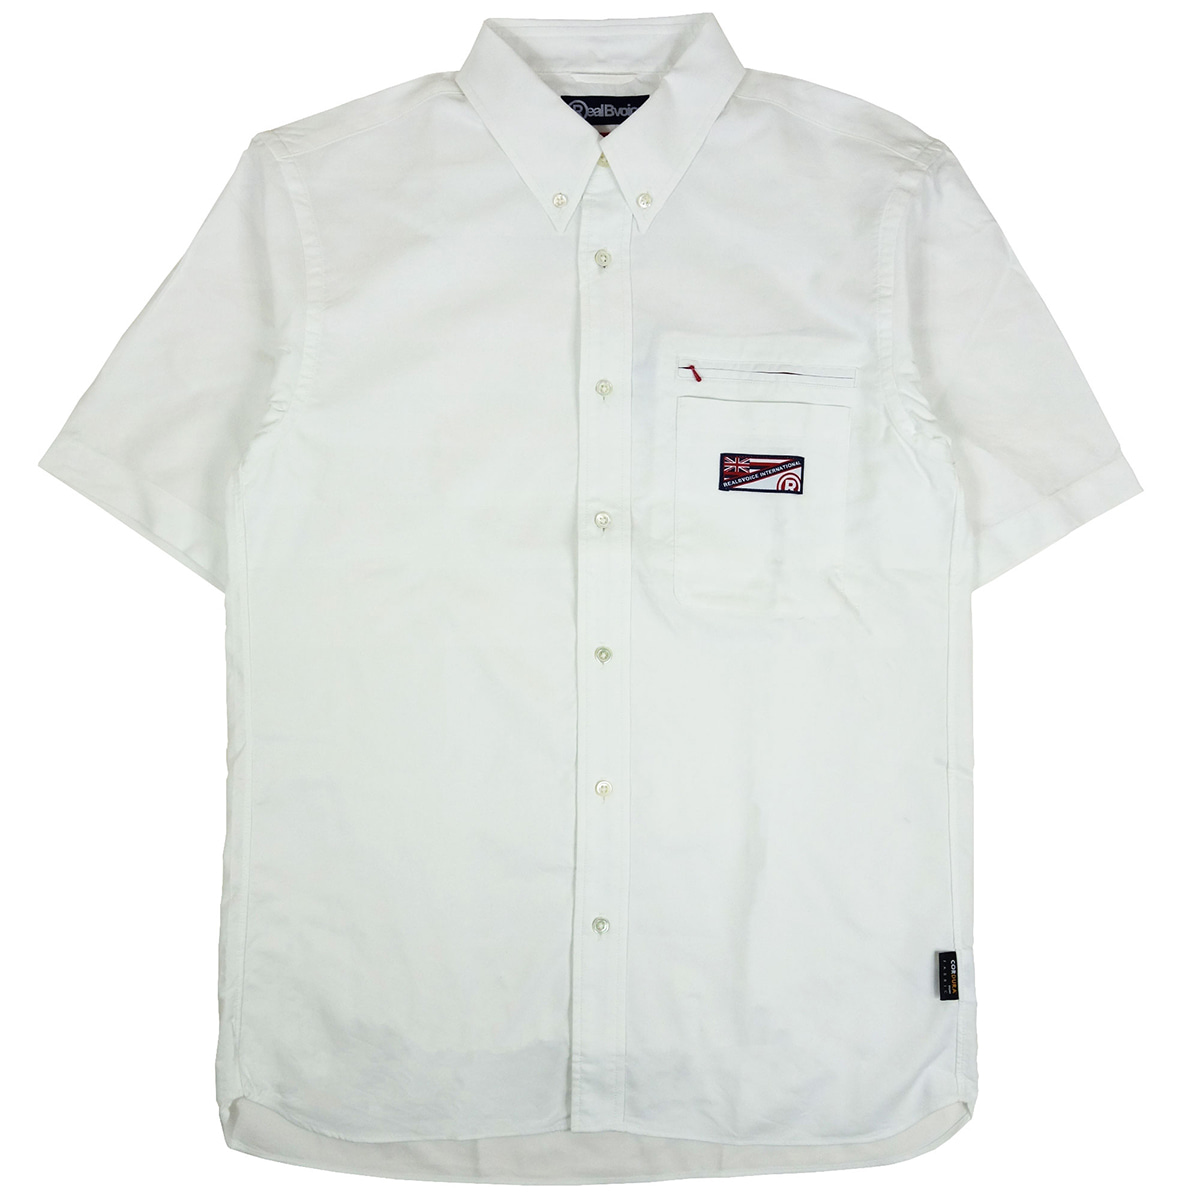 MADE IN JAPAN CORDURA SHORT SLEEVE SHIRT